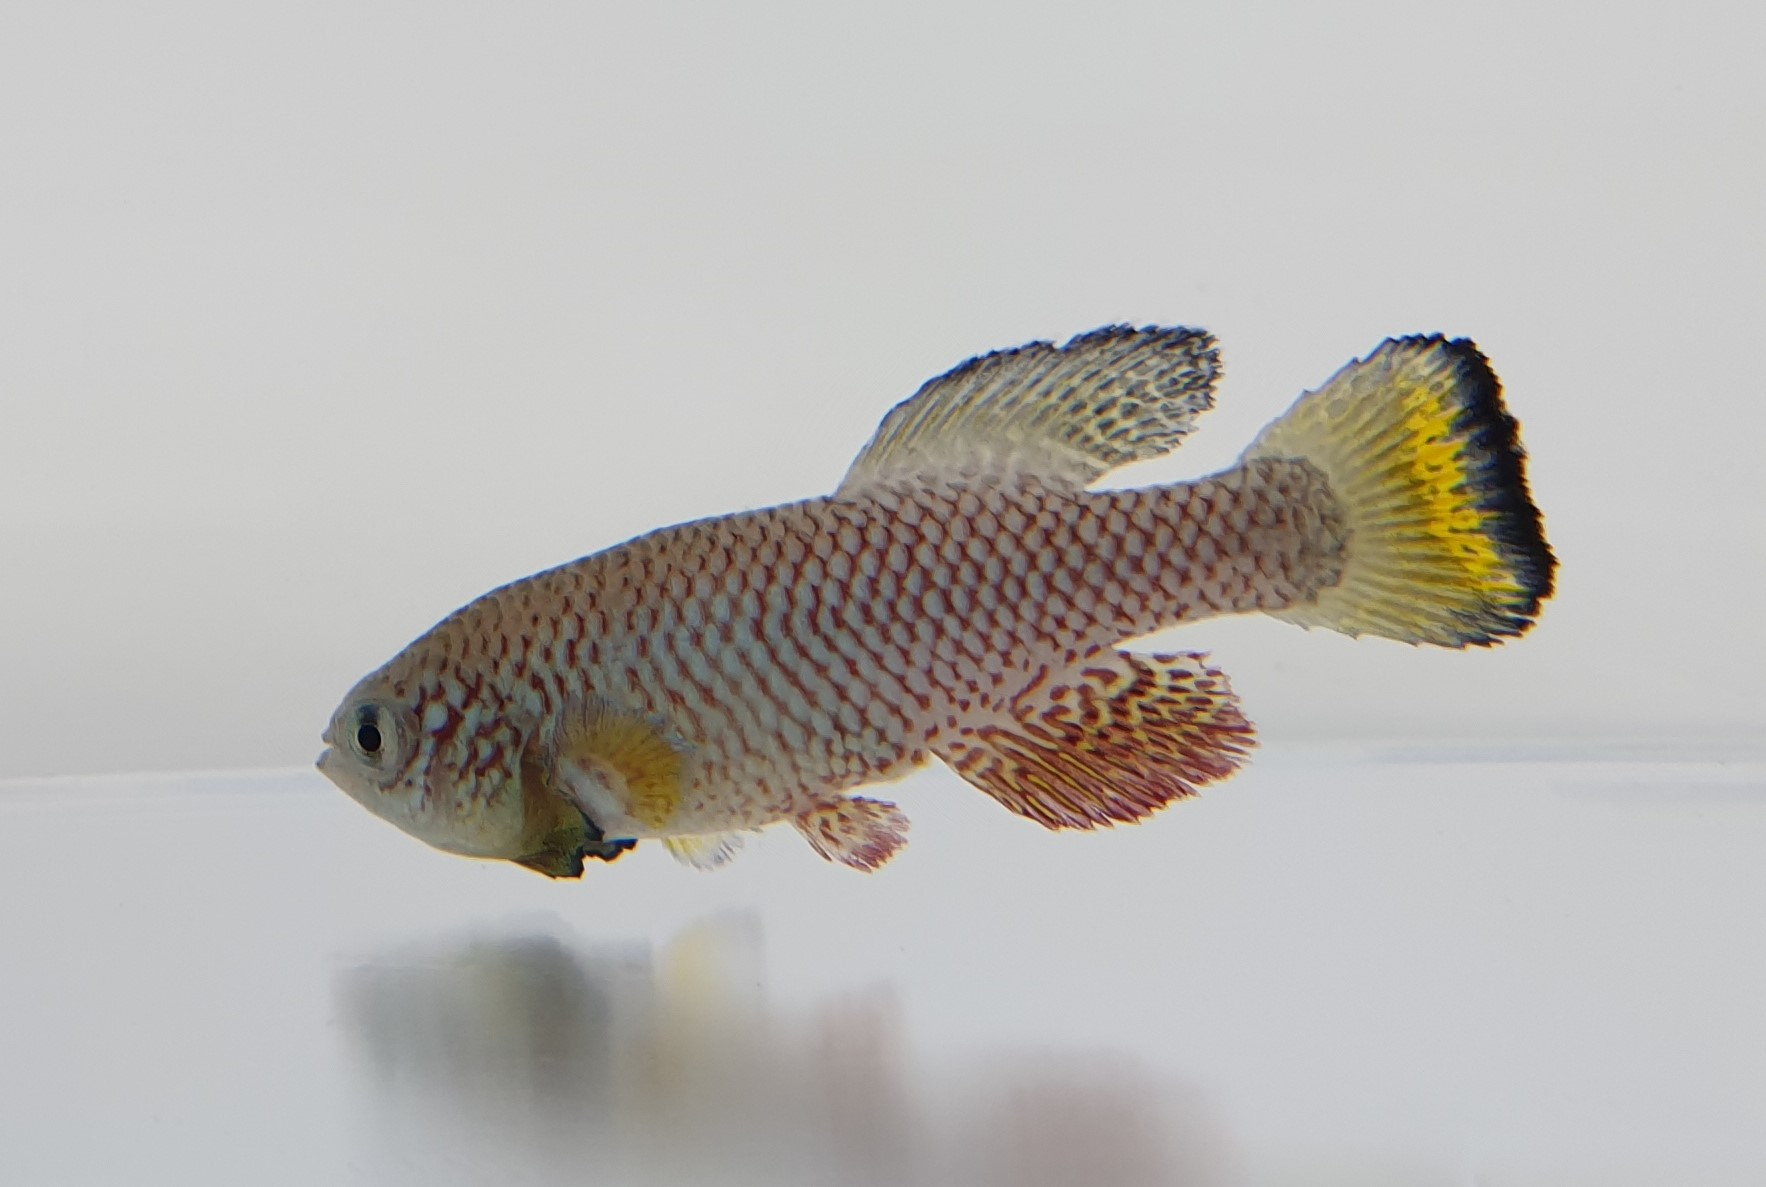 Nothobranchius furzeri